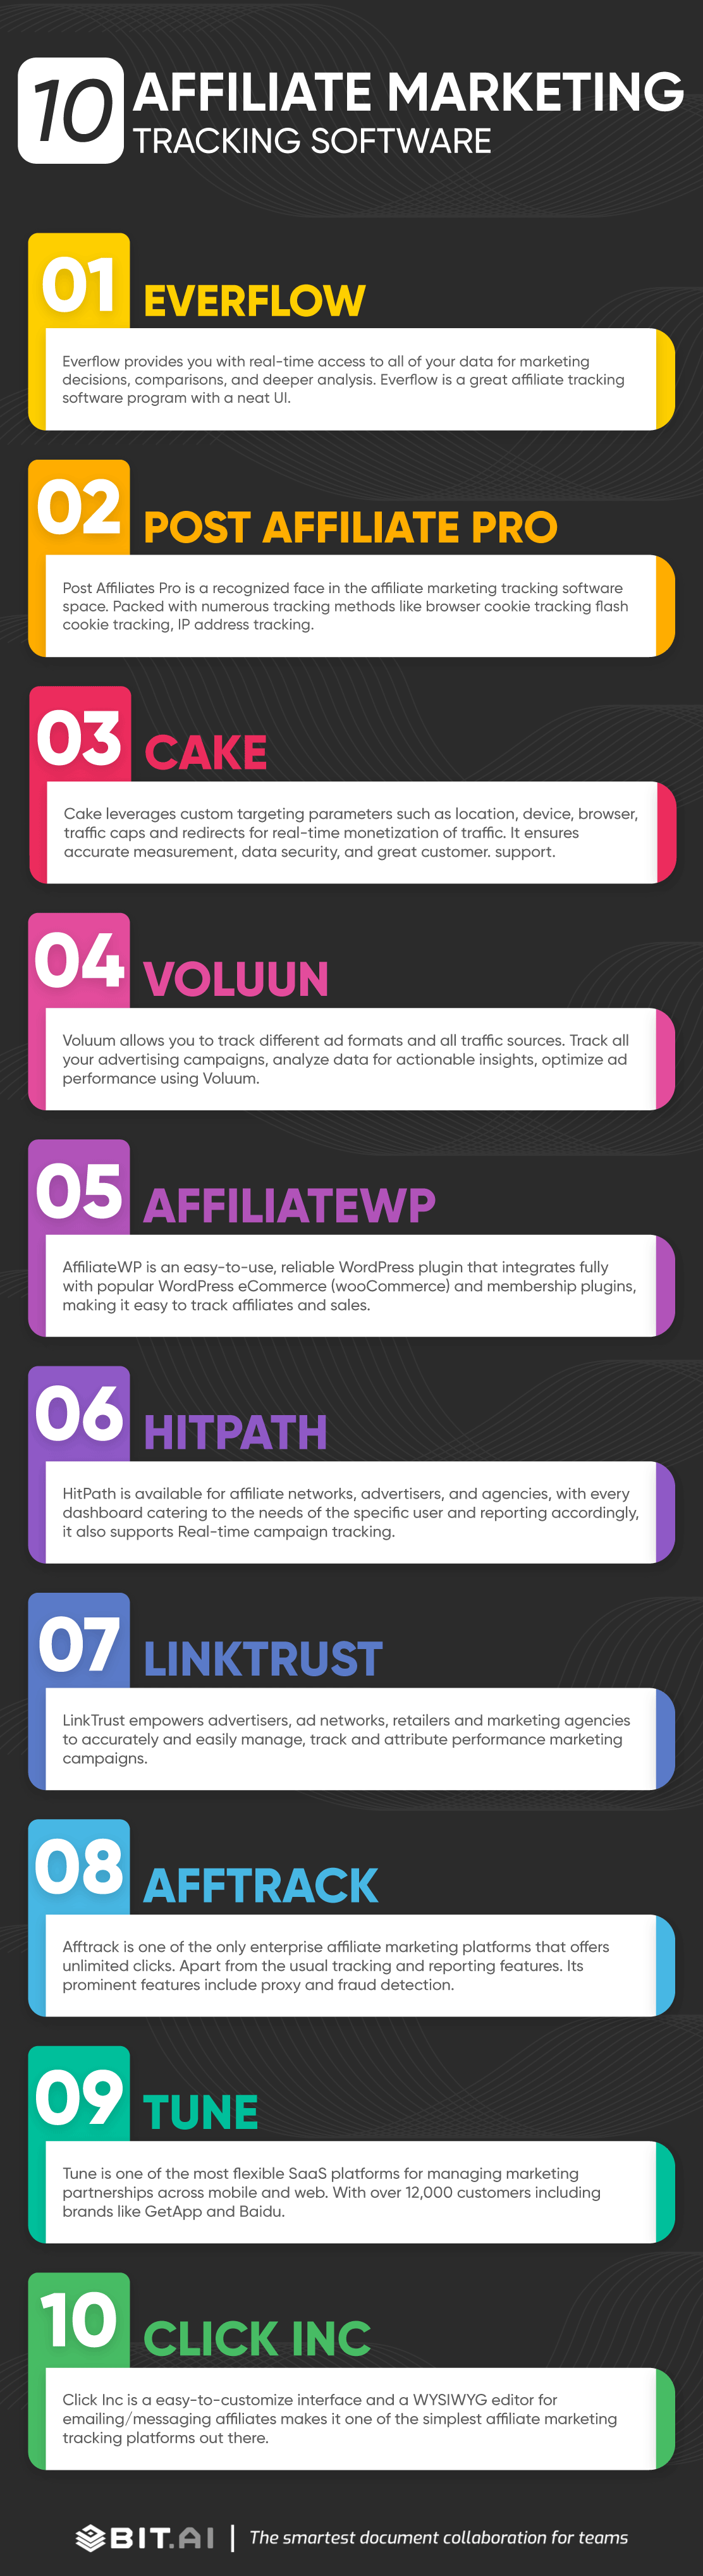 Affiliate marketing tracking software infographic